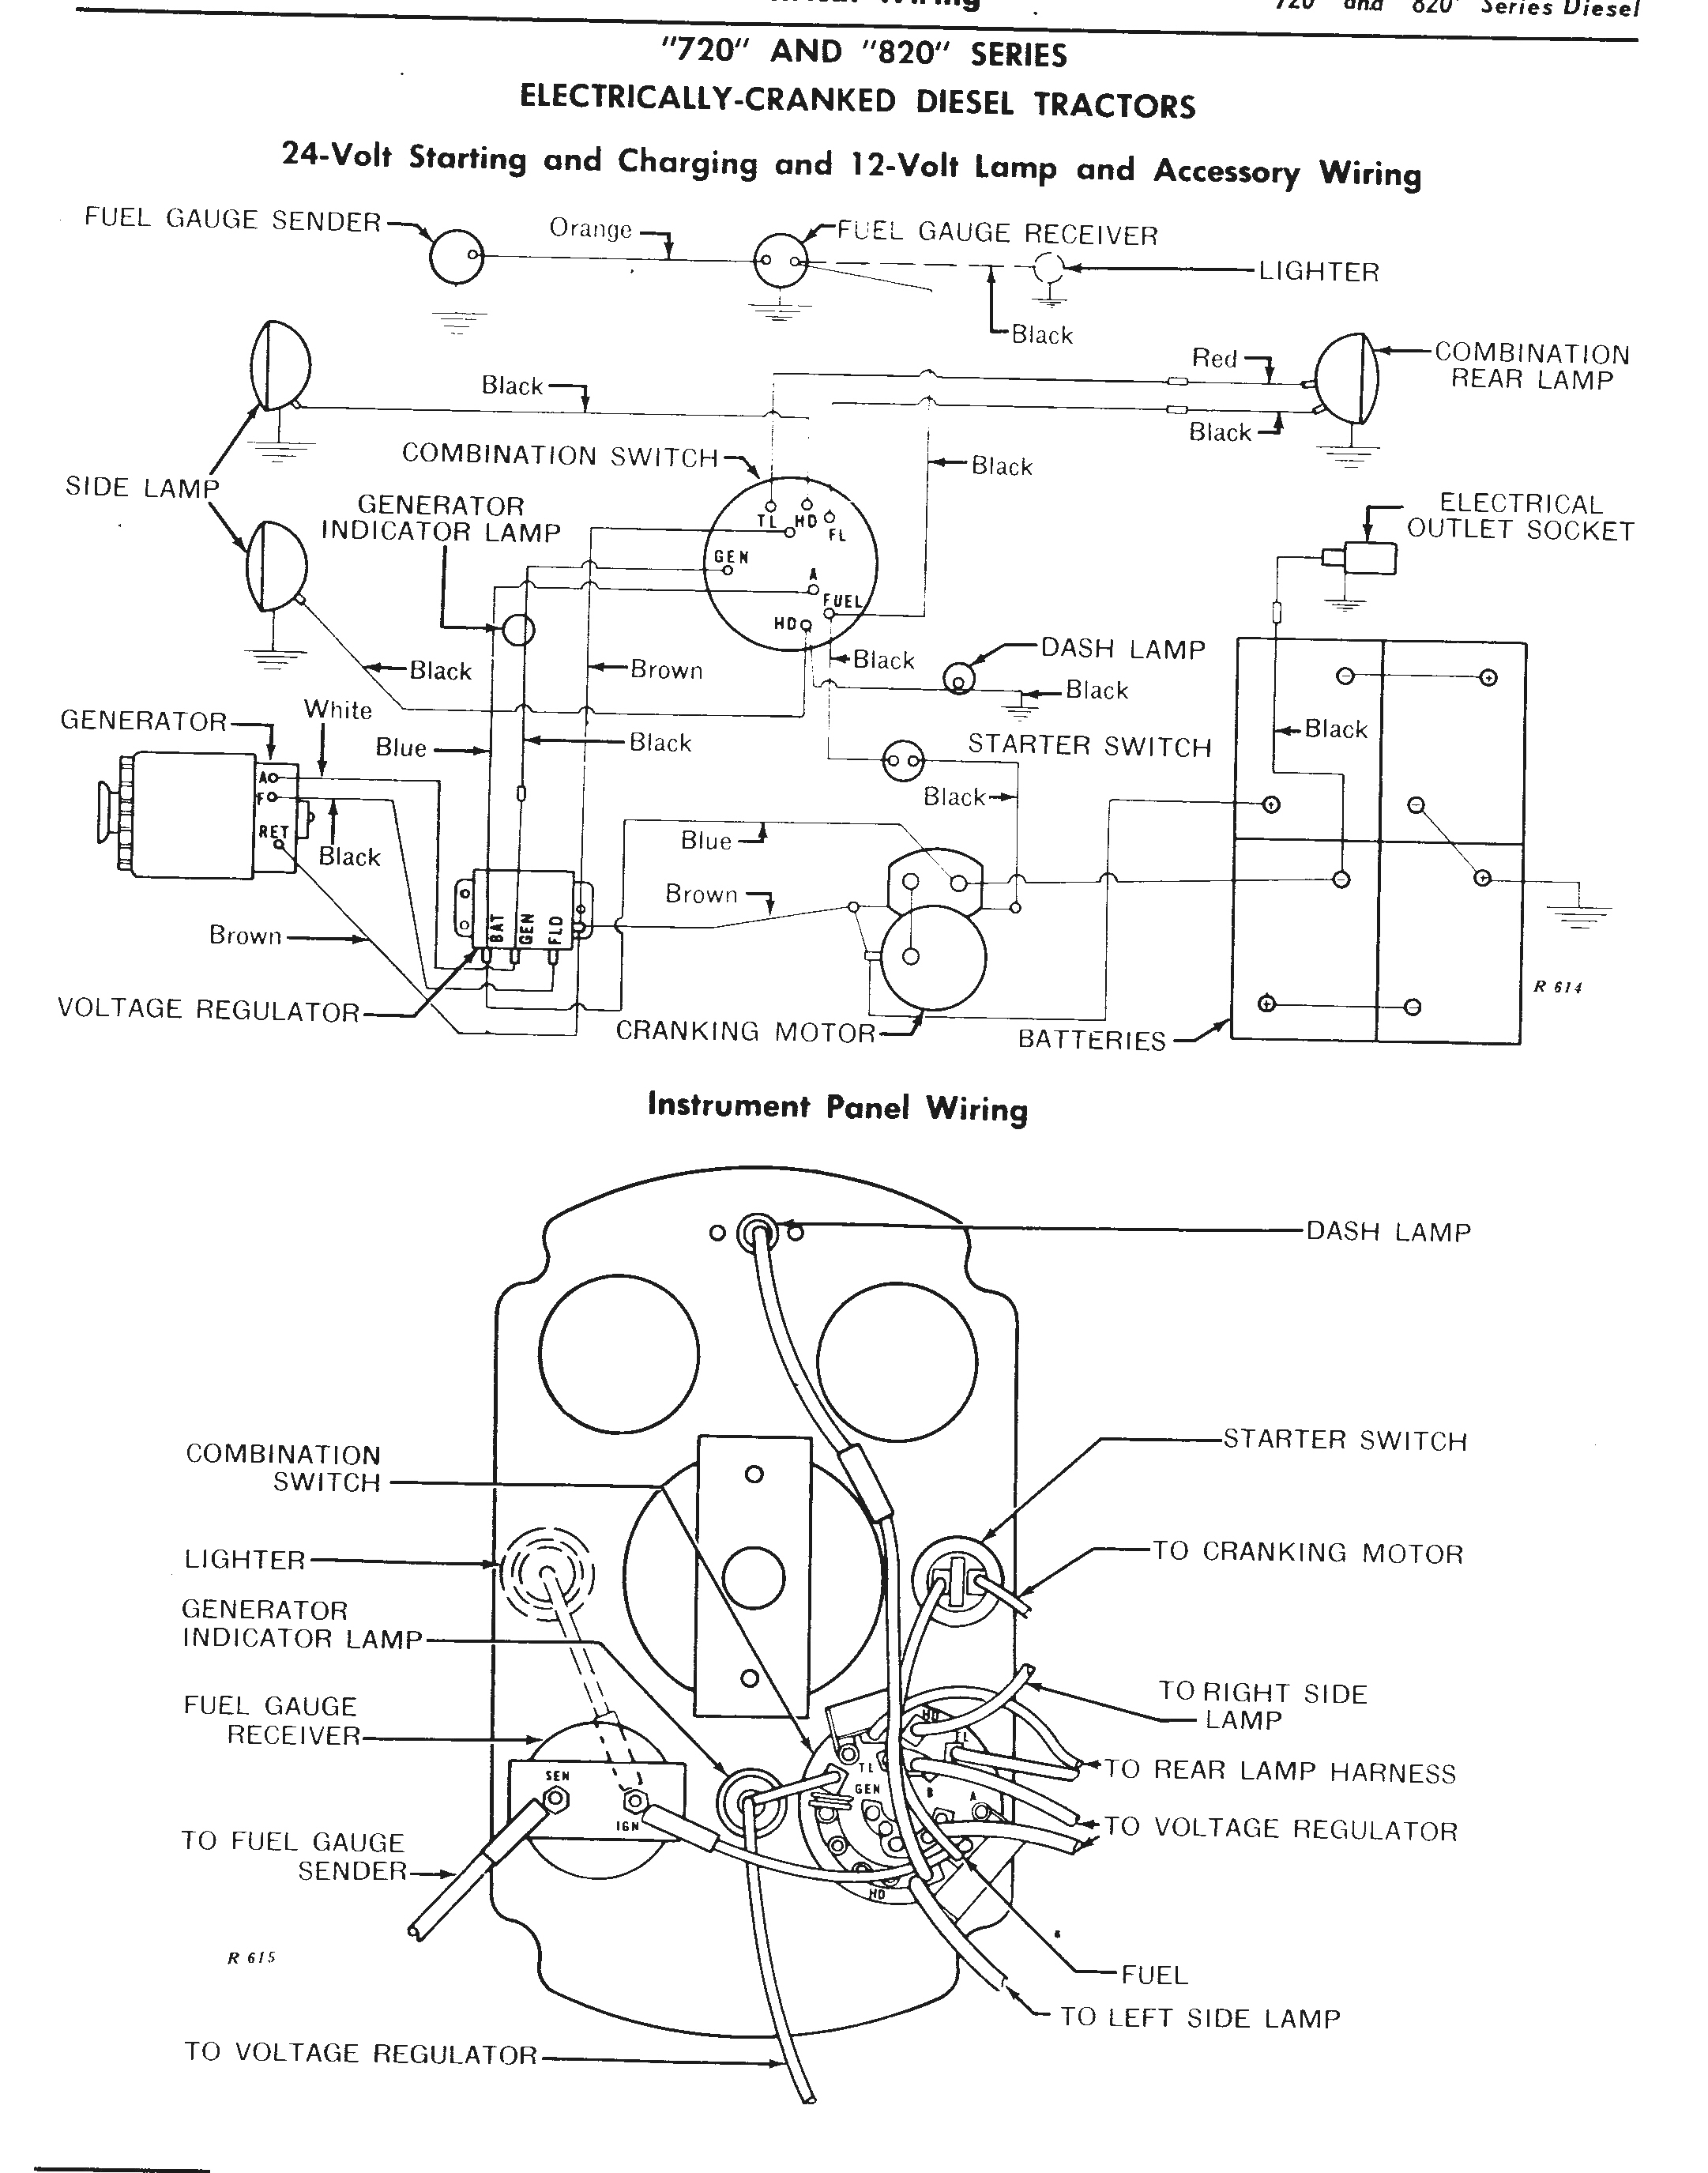 Fine The John Deere 24 Volt Electrical System Explained Wiring Cloud Staixuggs Outletorg